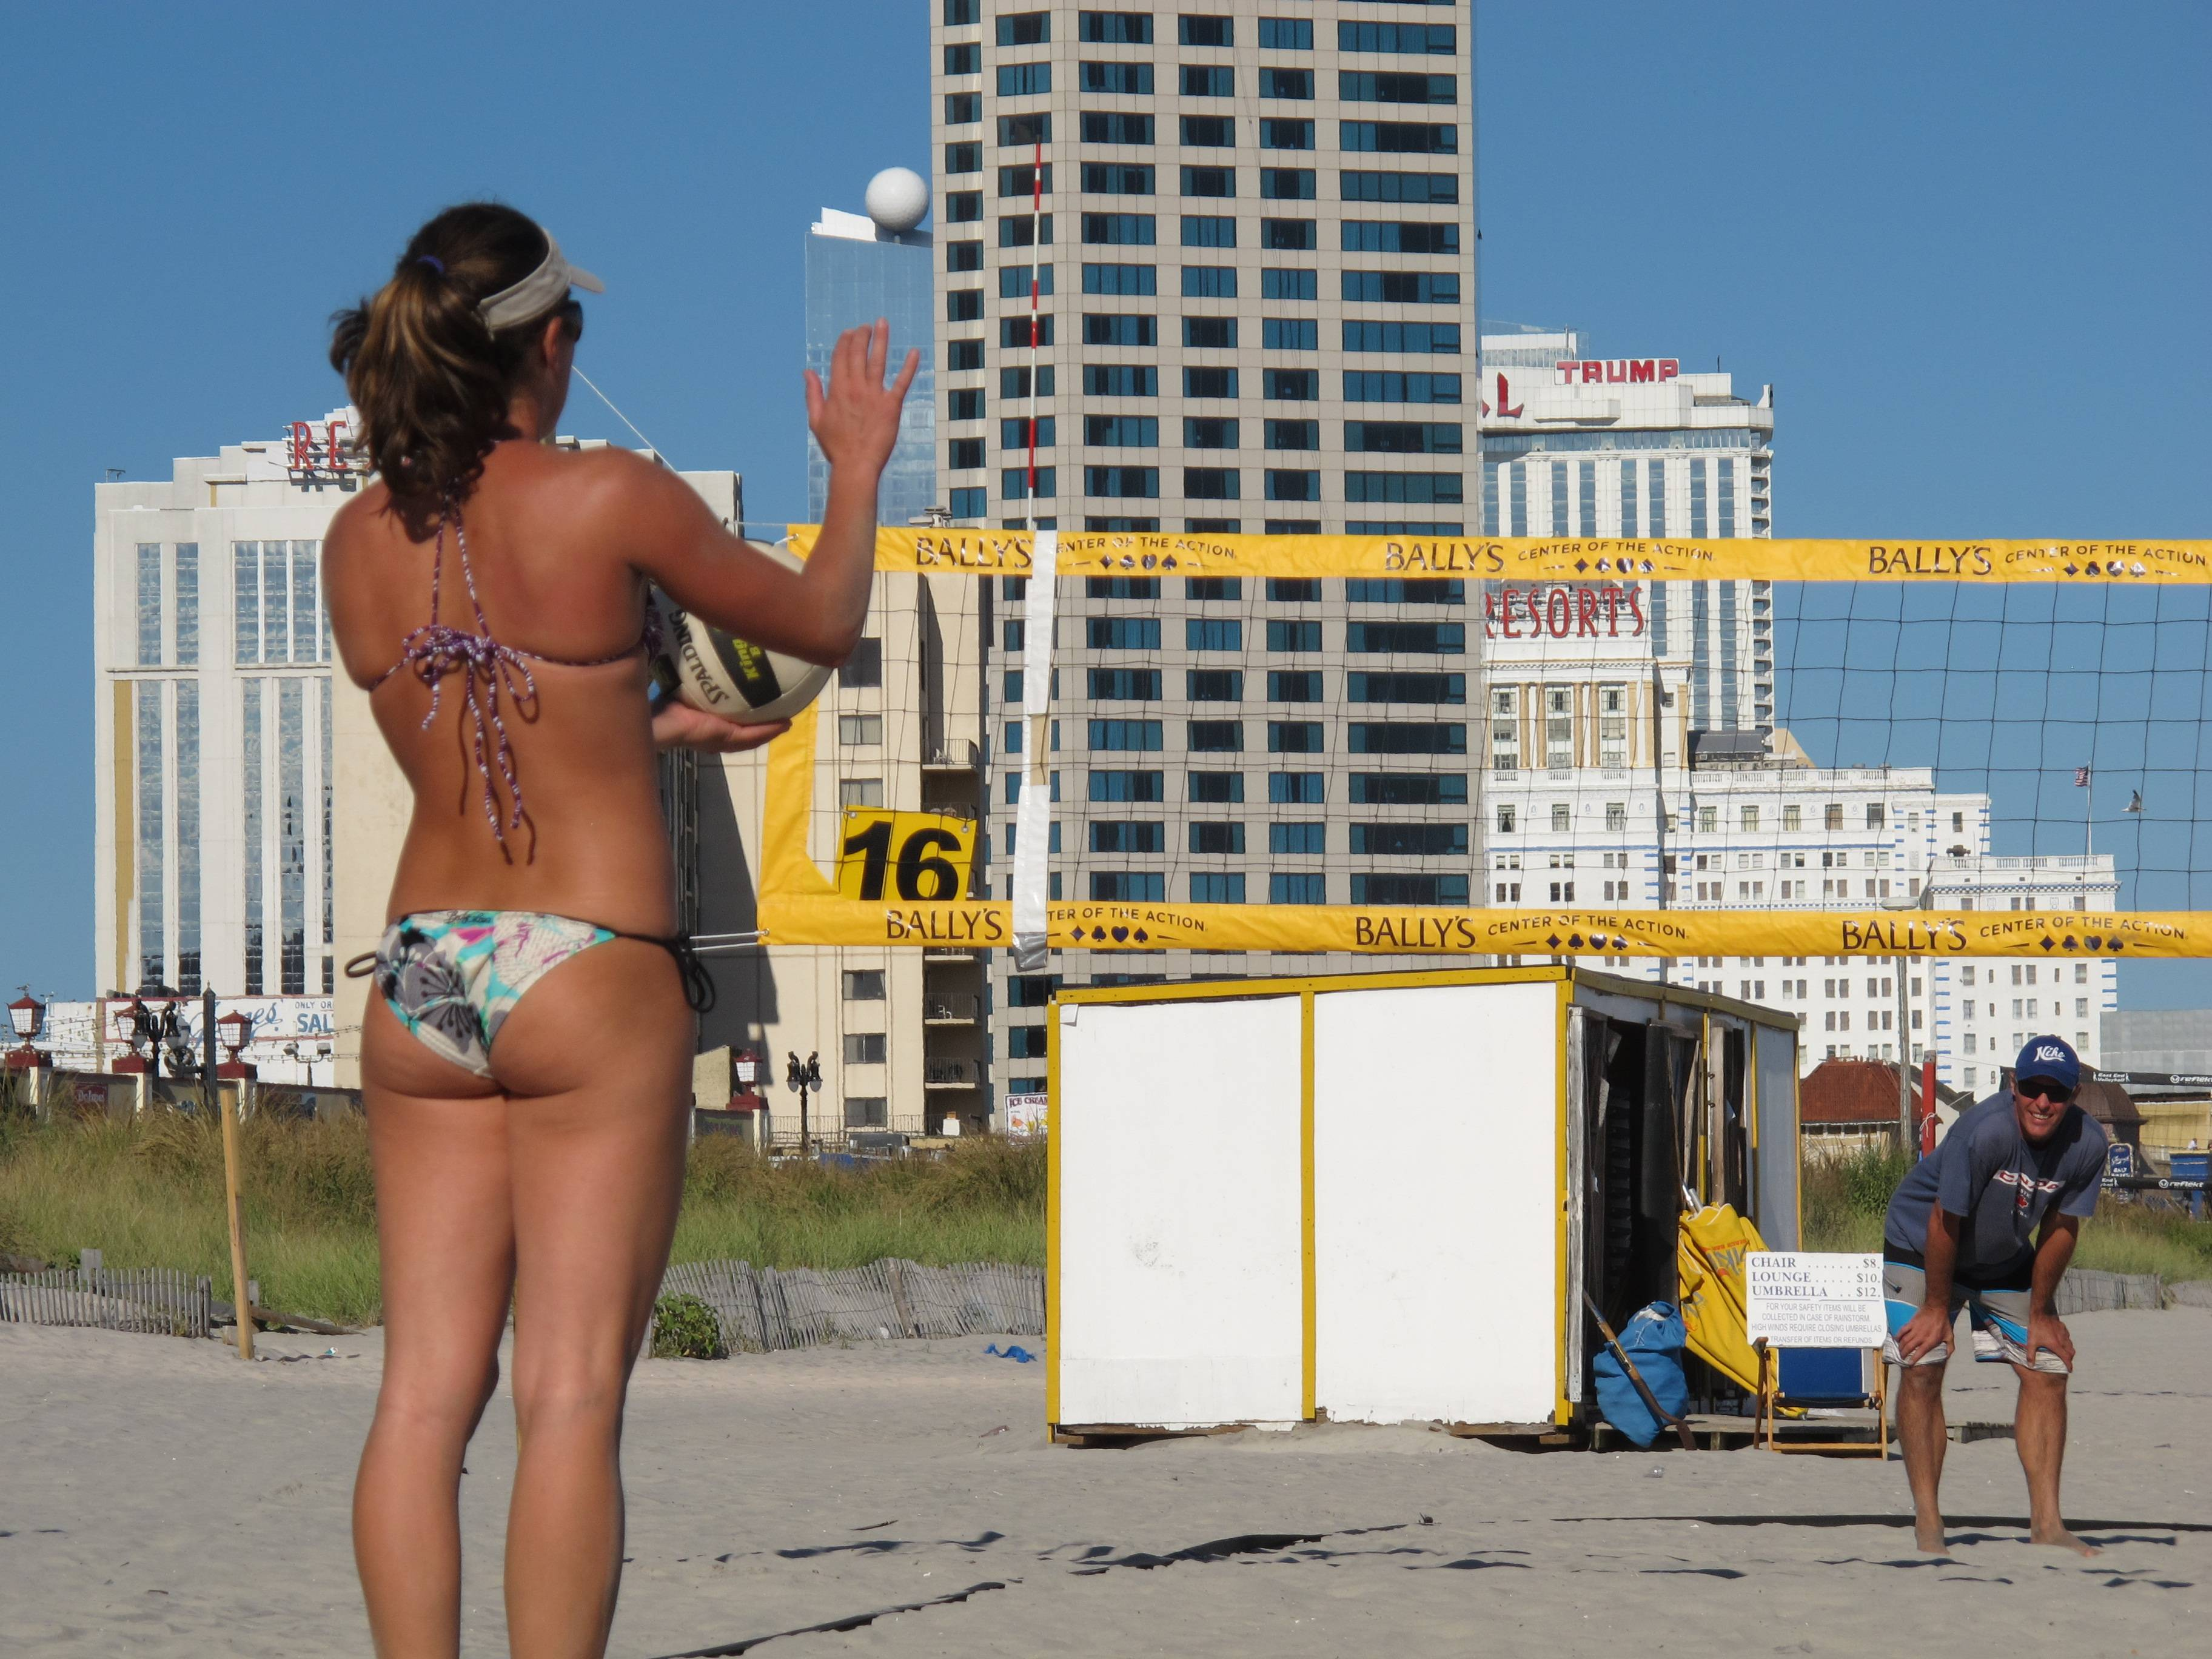 In this Sept. 6, 2013 photo, a woman prepares to serve a volleyball during a game on the Atlantic City N.J. beachfront before a national pro volleyball tour began there. That tour will return again this summer, along with many other free activities that don't involve gambling. (AP Photo/Wayne Parry)